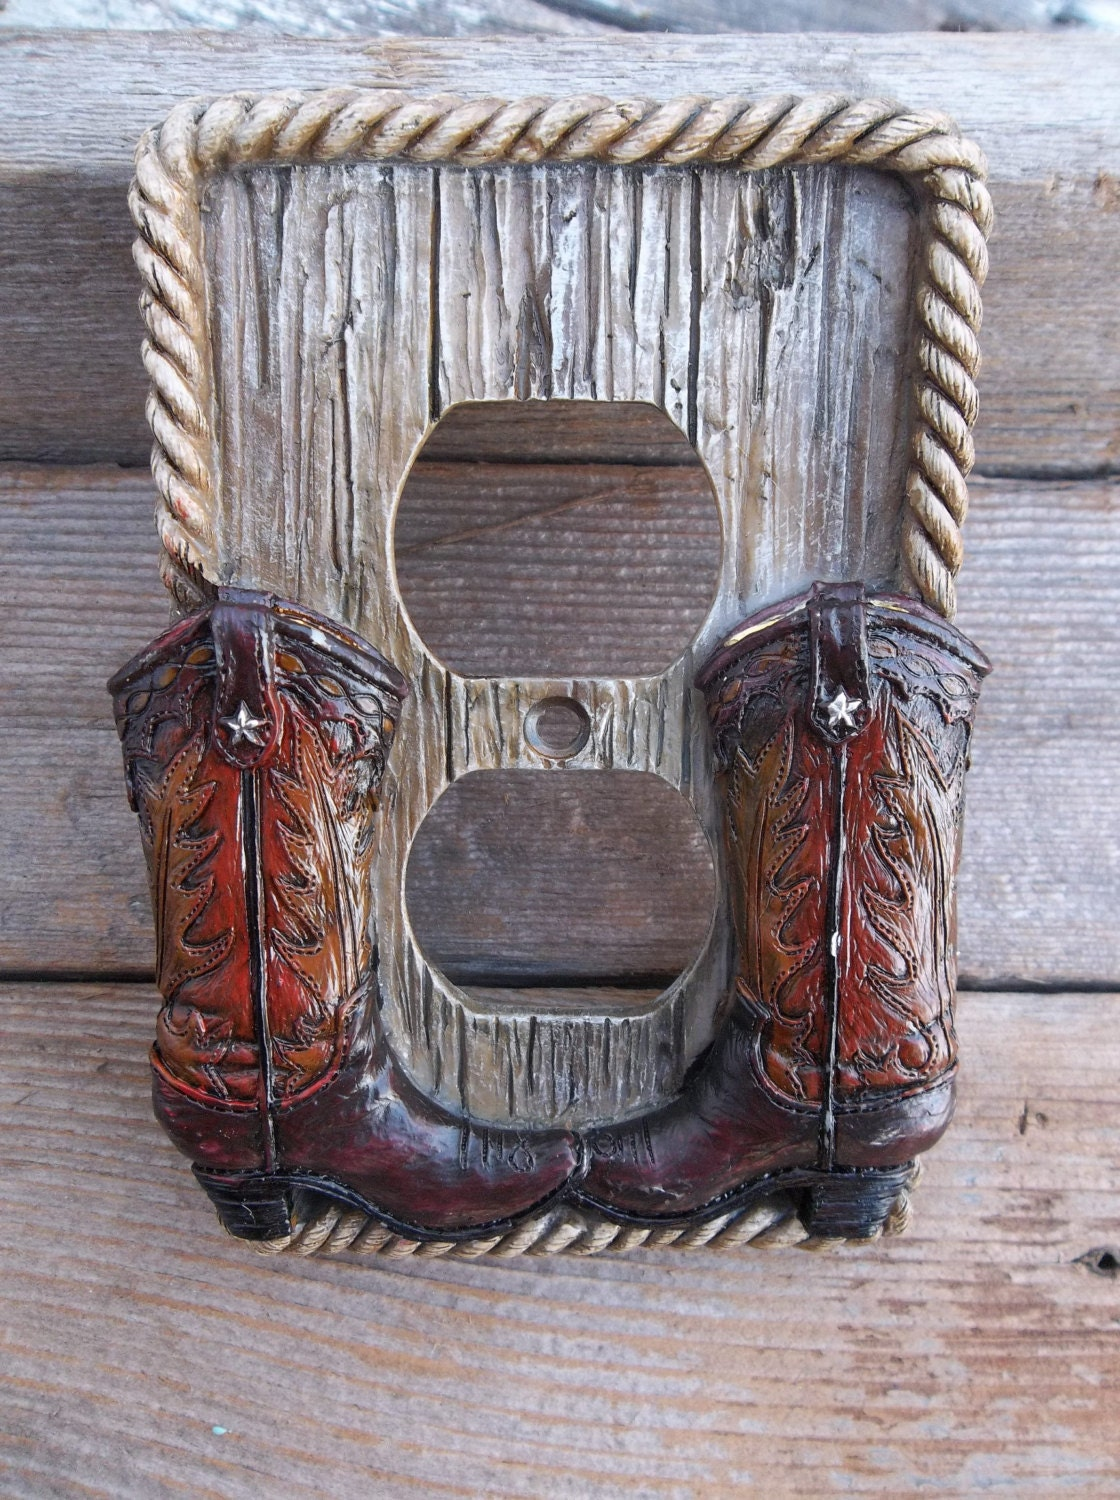 Country Man Cave Decor : Western outlet cover country room decor man cave cowboy boot